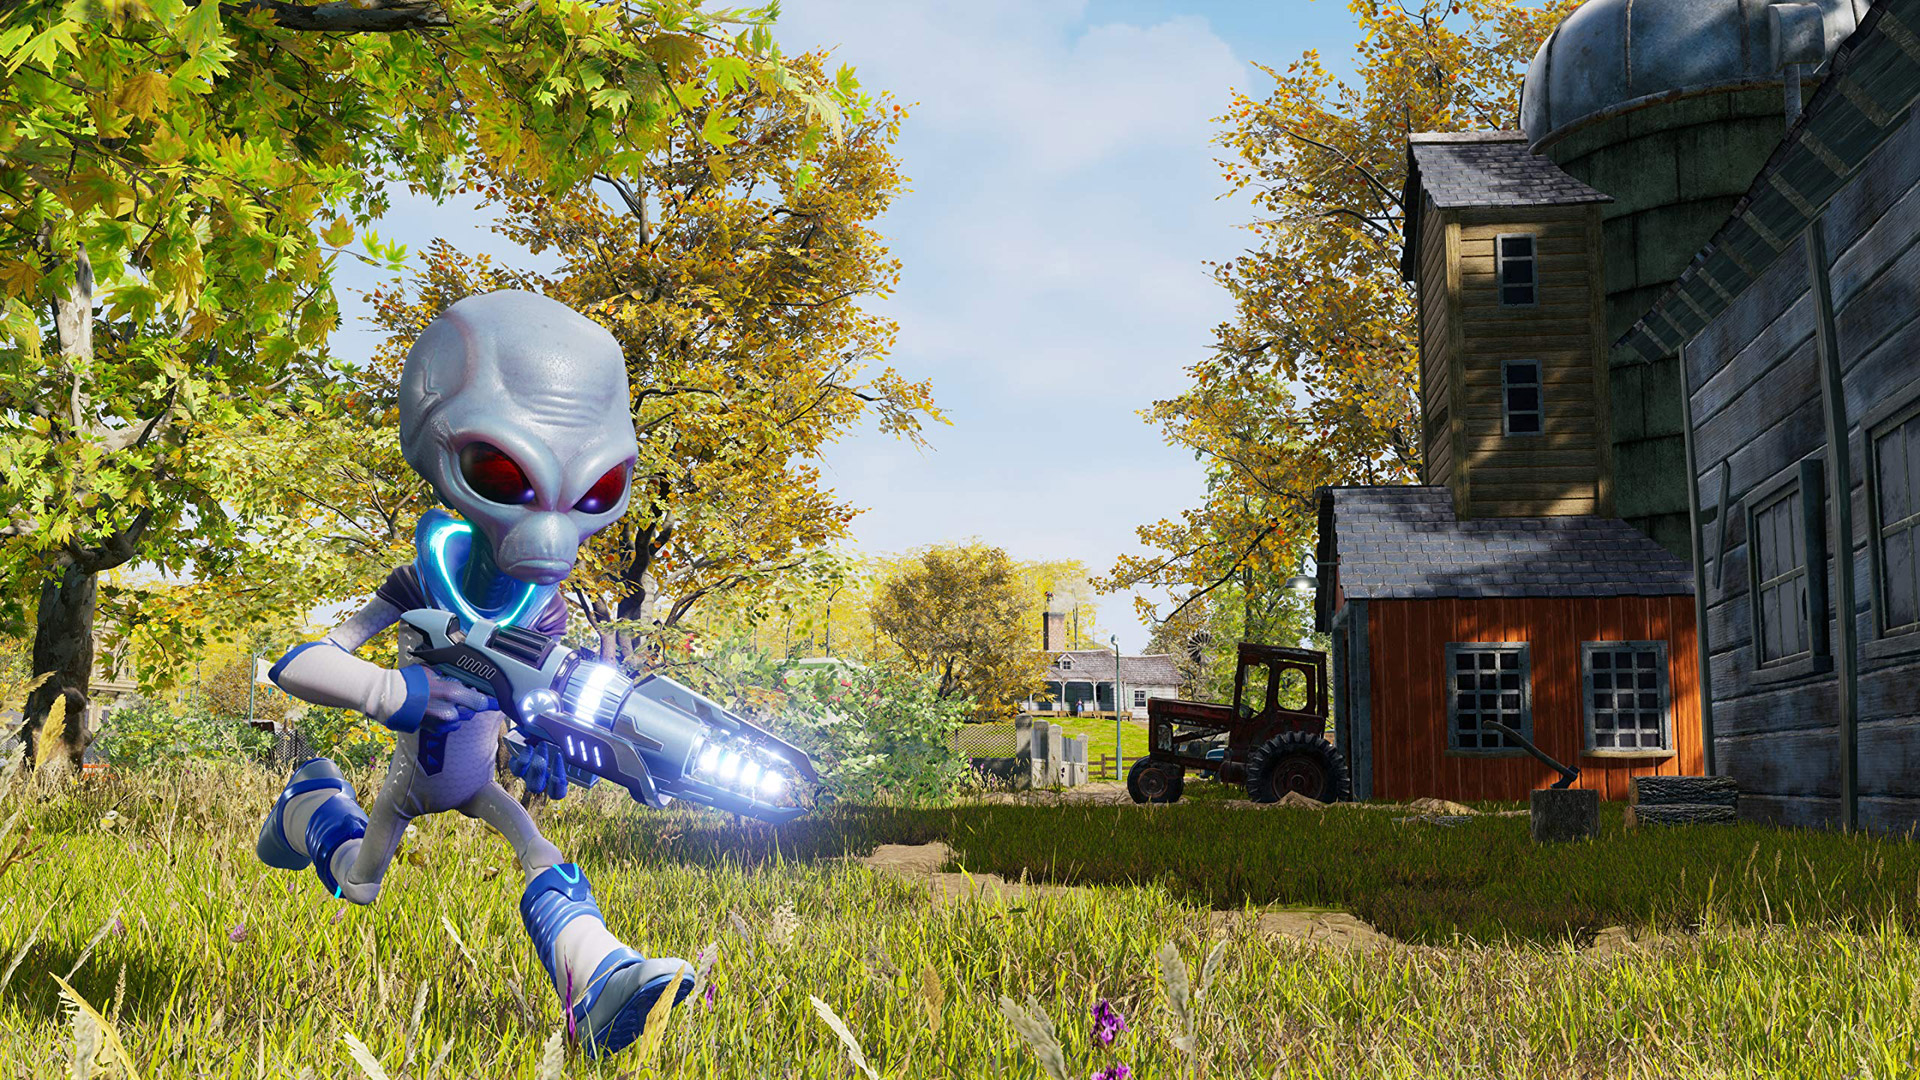 Free Destroy All Humans! Wallpaper in 1920x1080